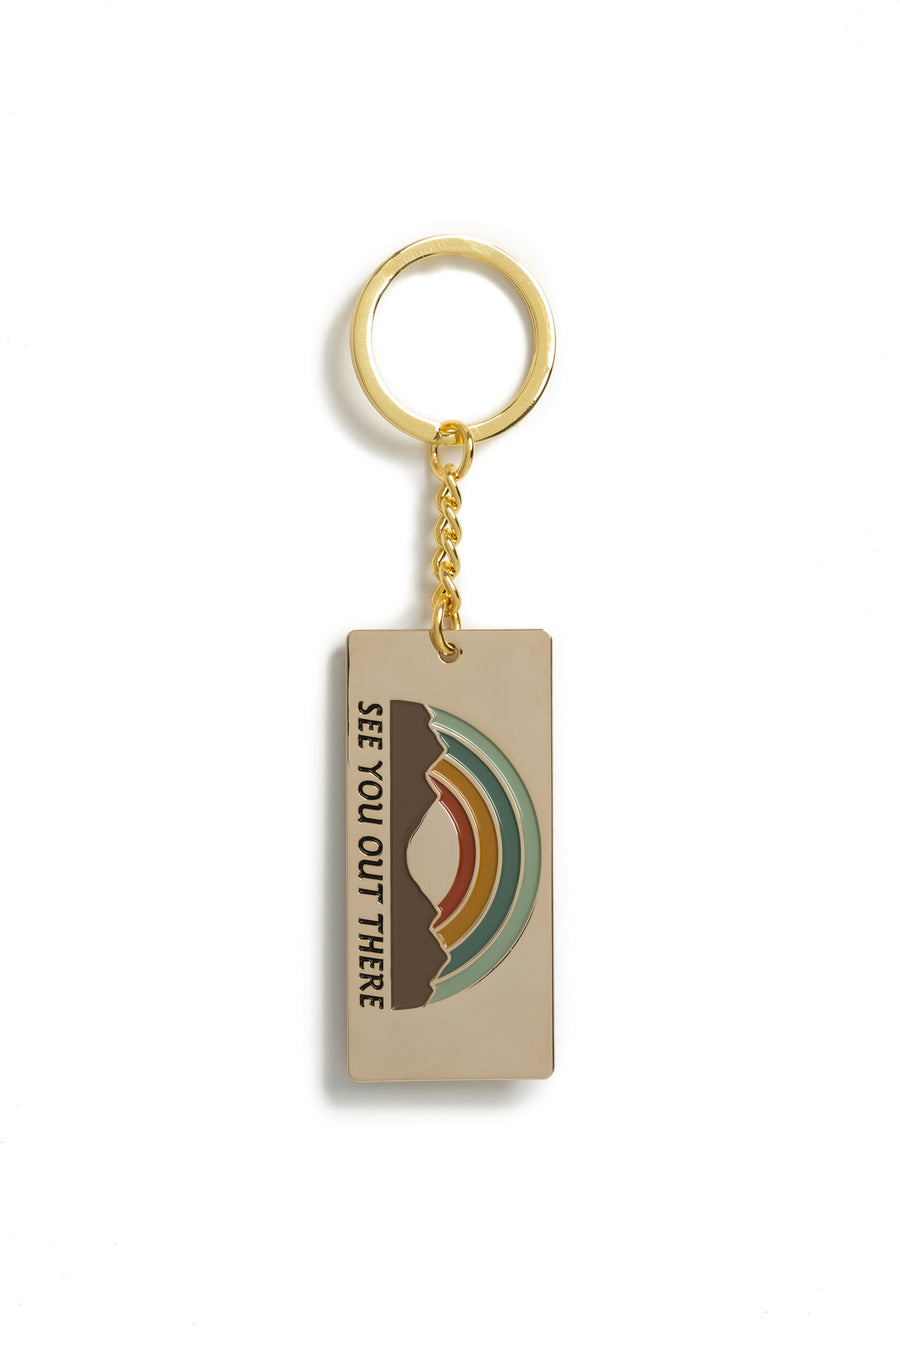 SCENIC SEE YOU KEYCHAIN